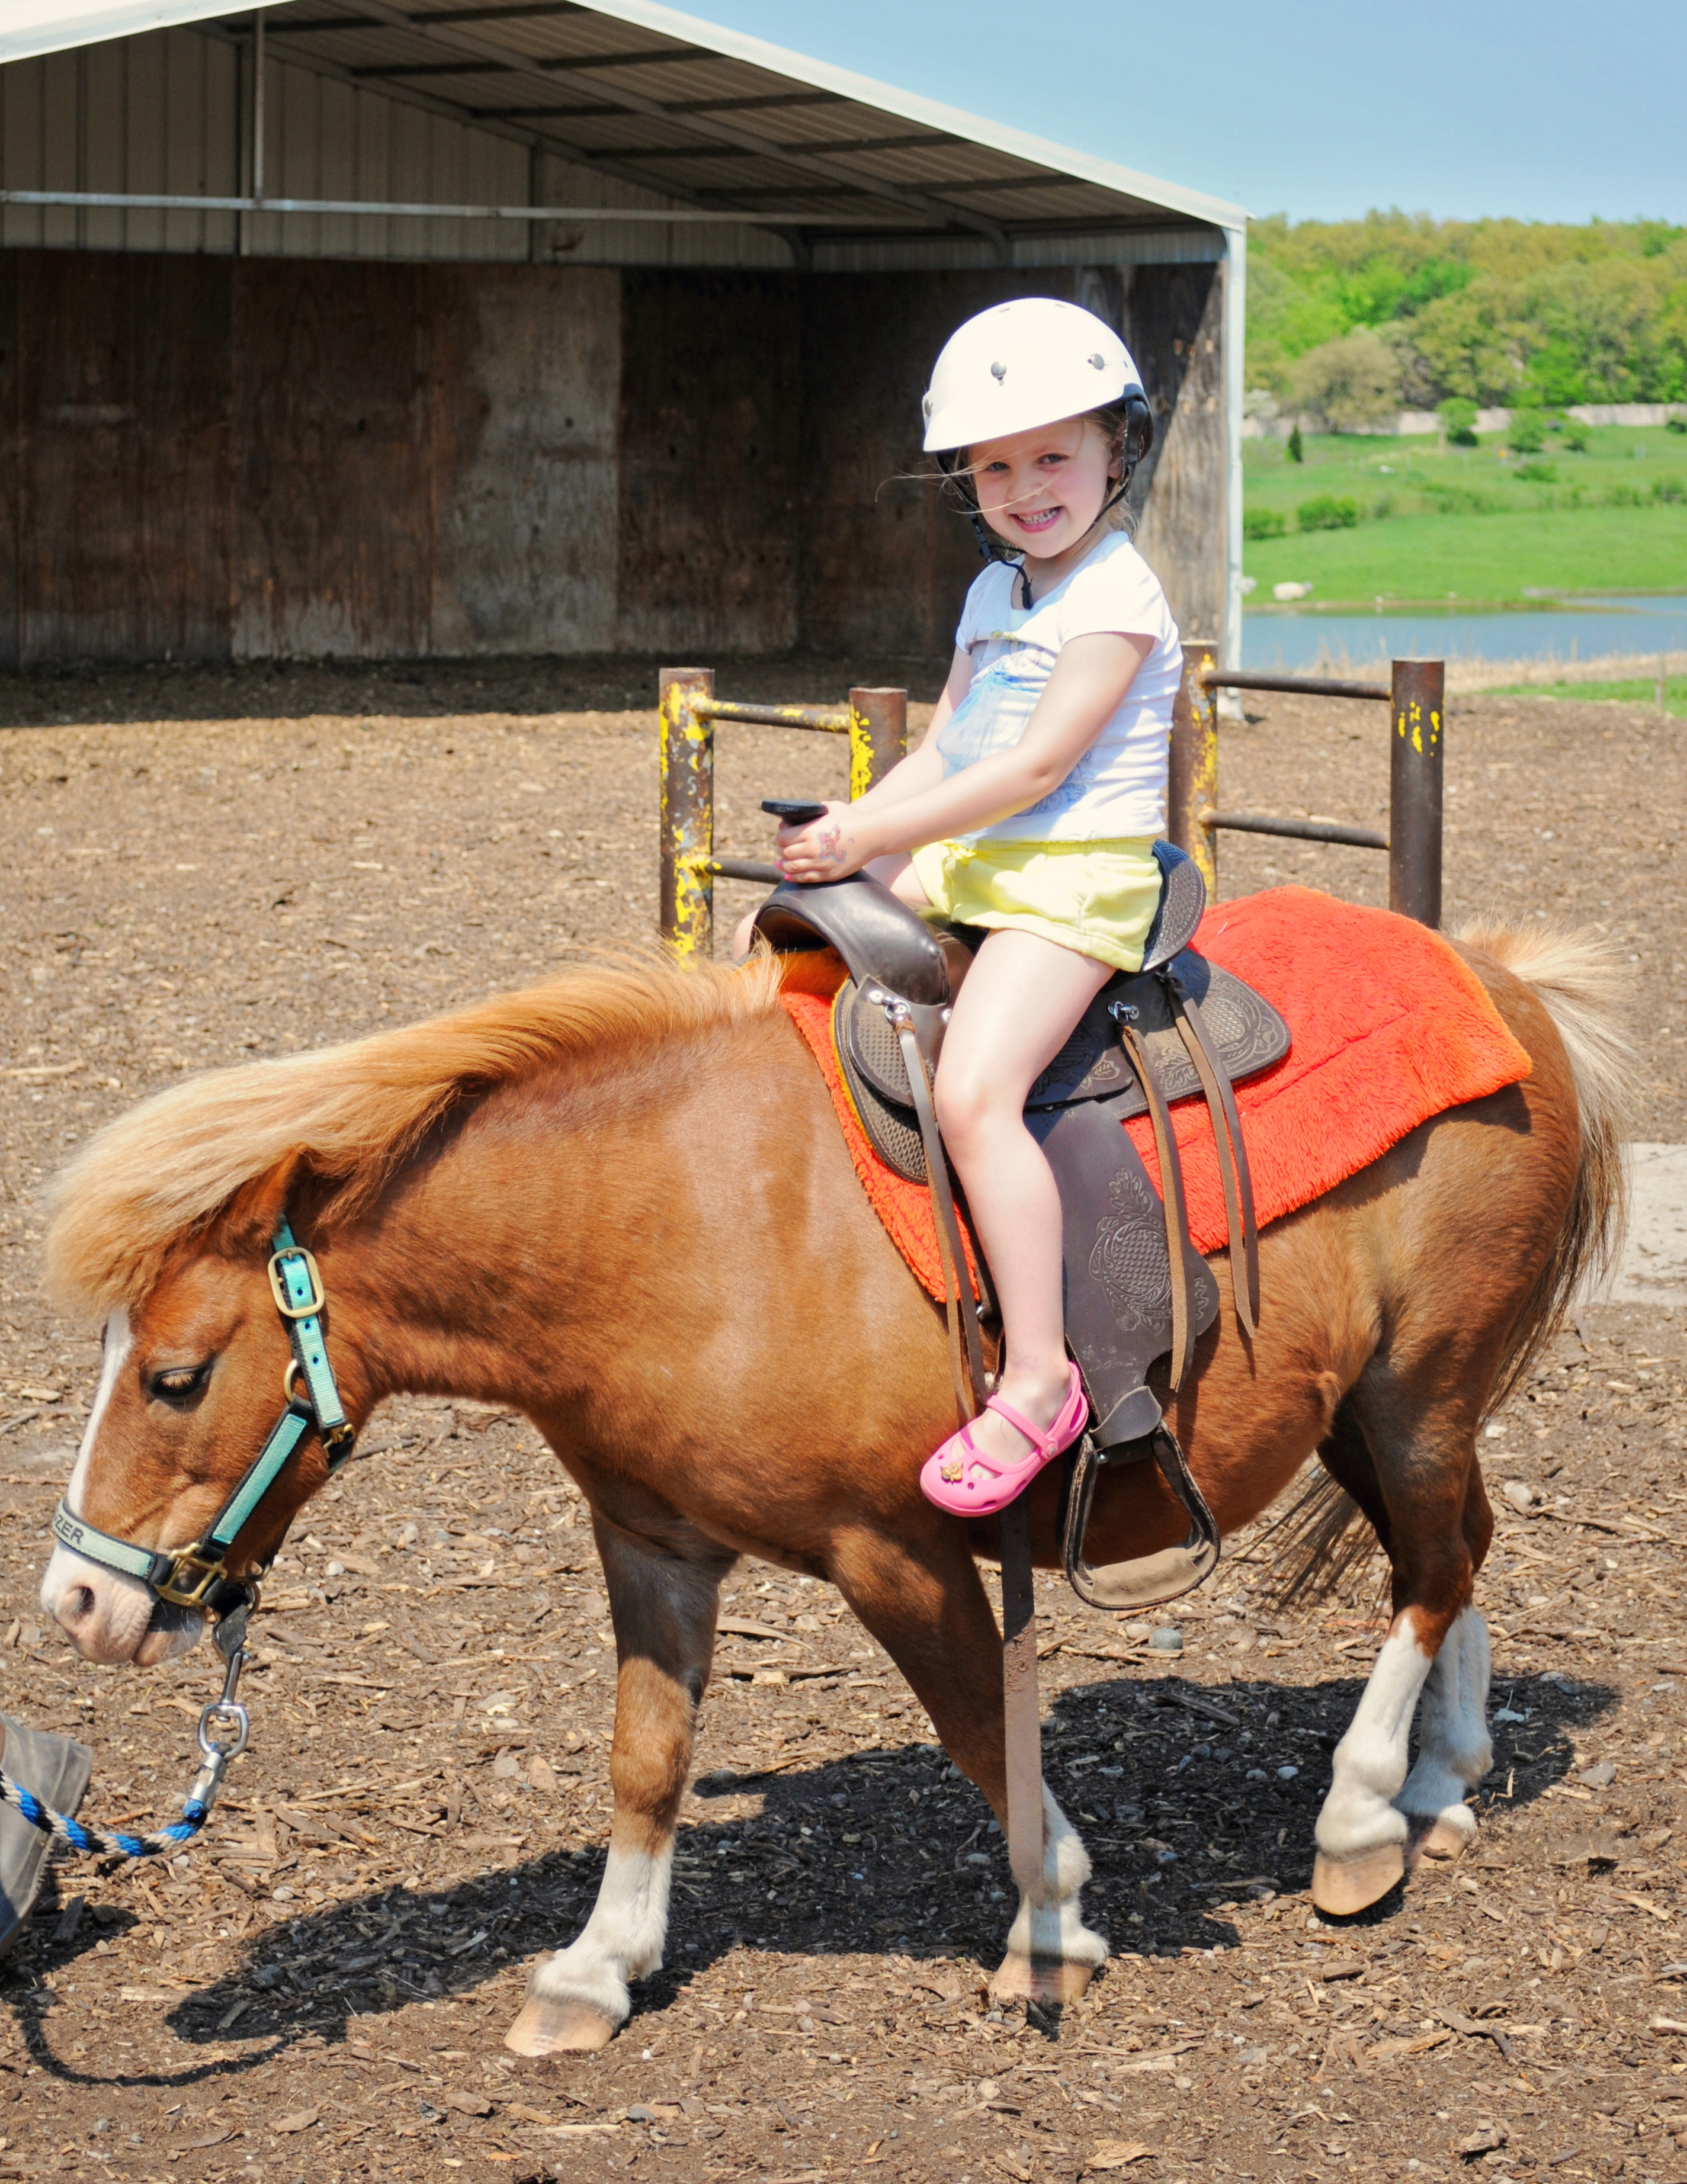 Student riding horse at Michigan's Bowers School Farm